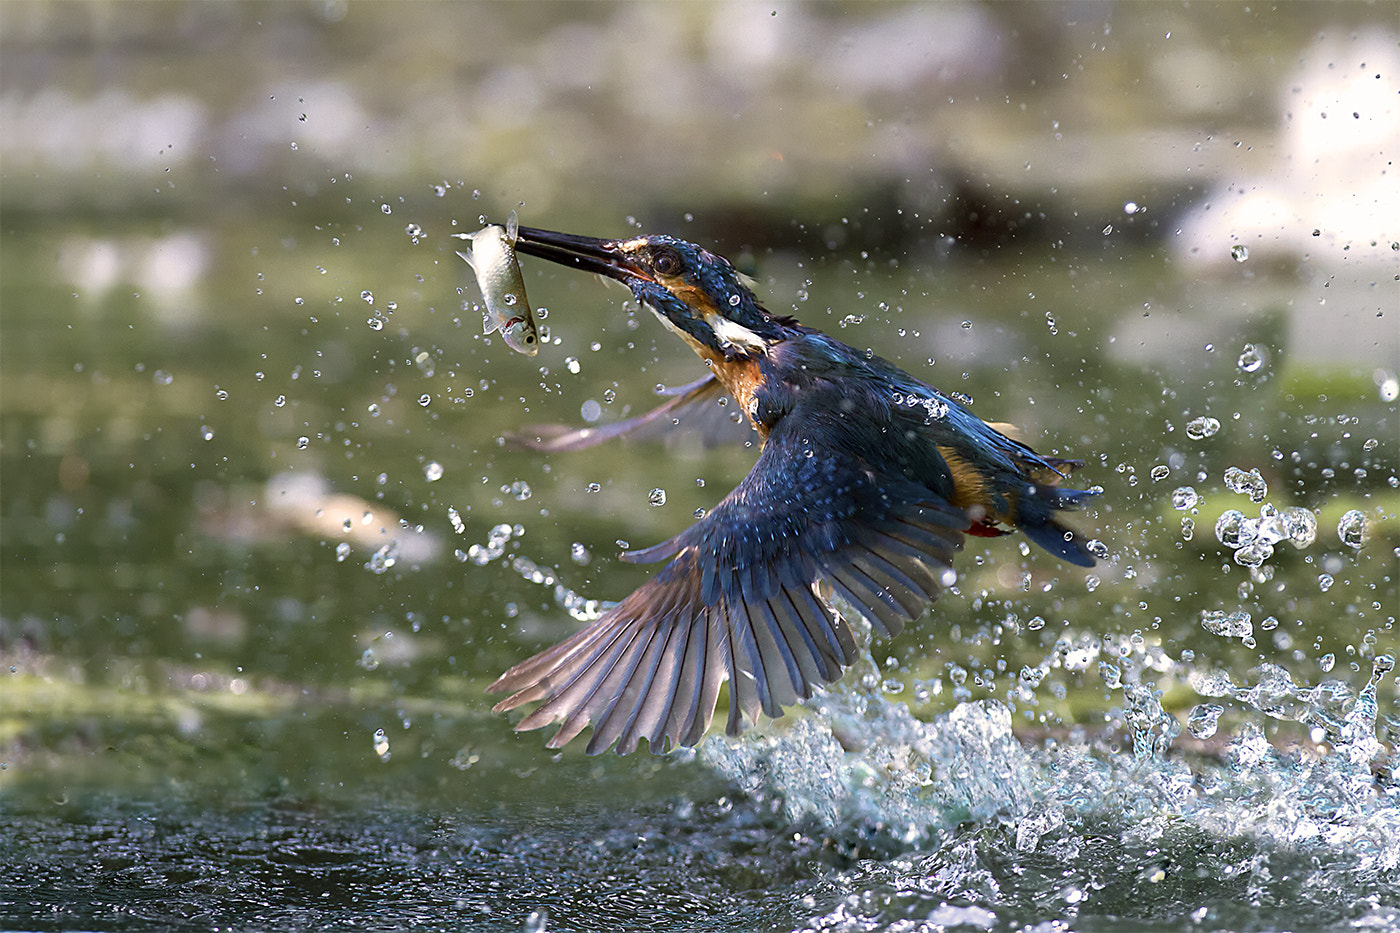 Photograph One dip, one fish! by Marco Redaelli on 500px